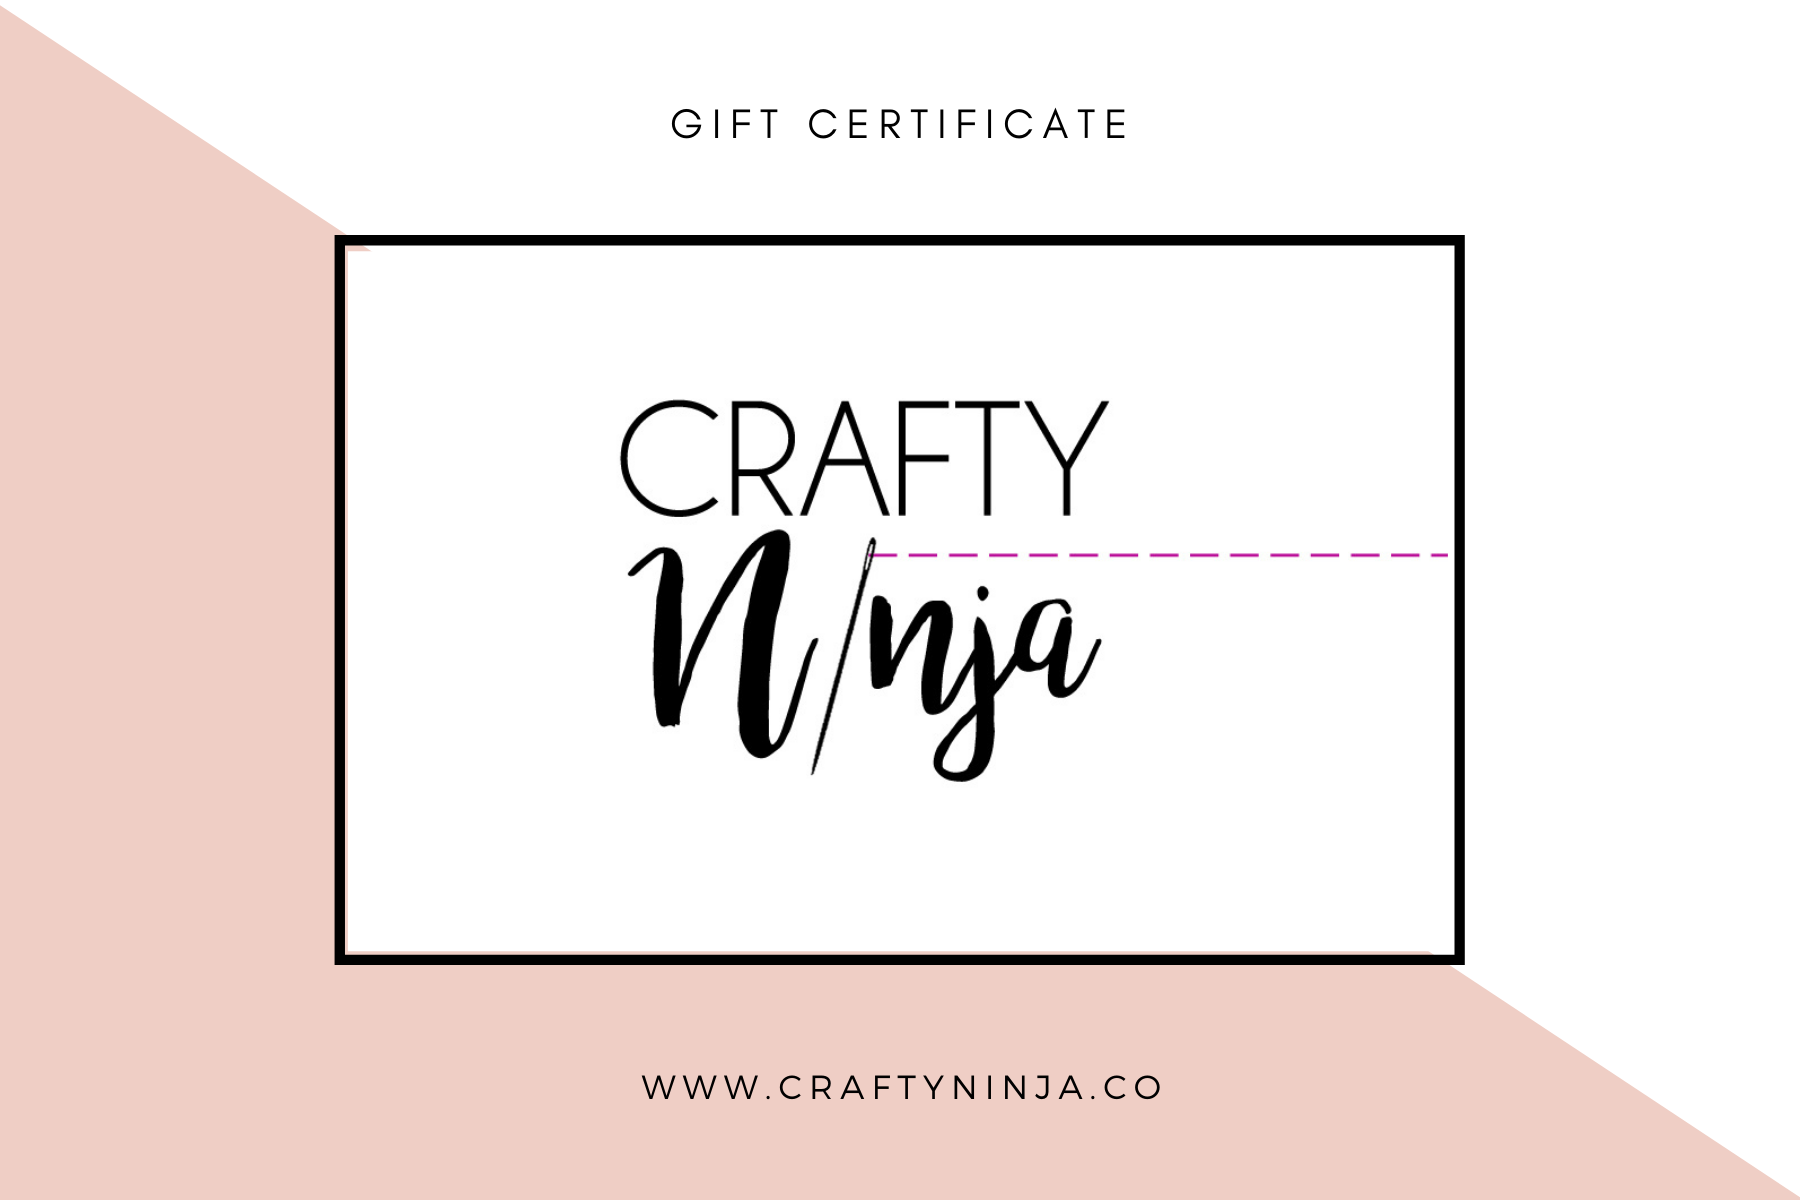 Gift Certificate for CraftyNinja.co